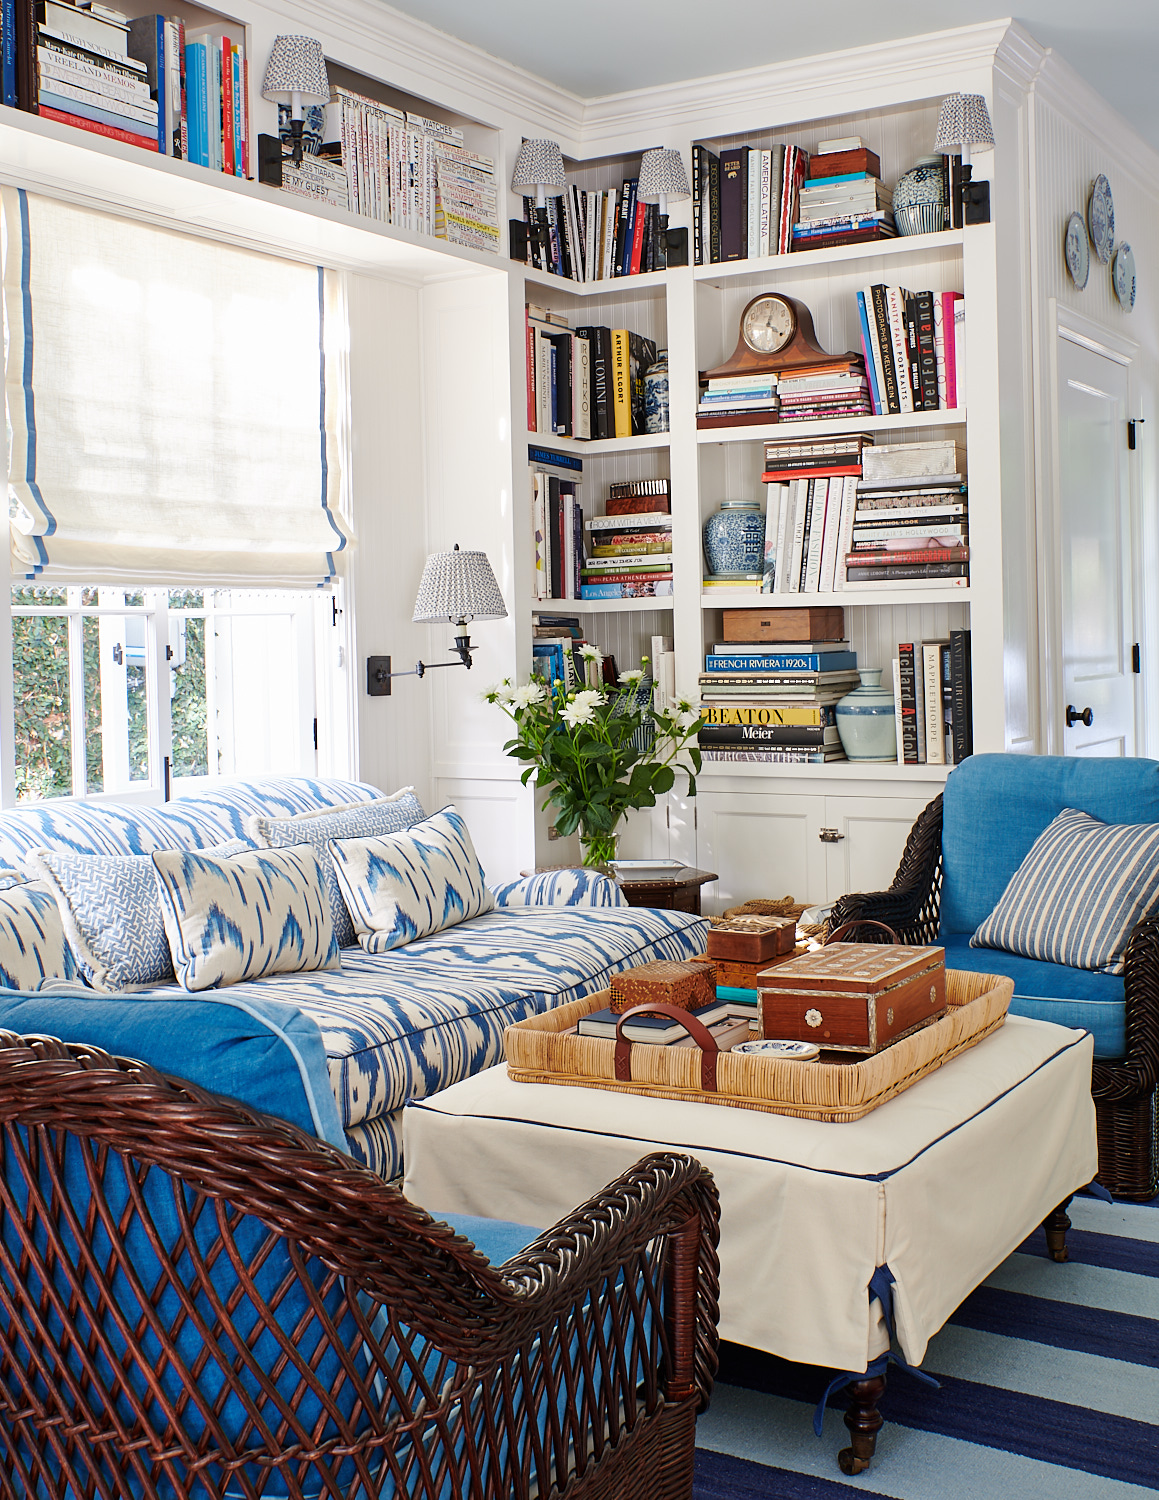 Roman shades, wicker club chairs with turquoise cushions, and cream ottoman with fitted slipcover